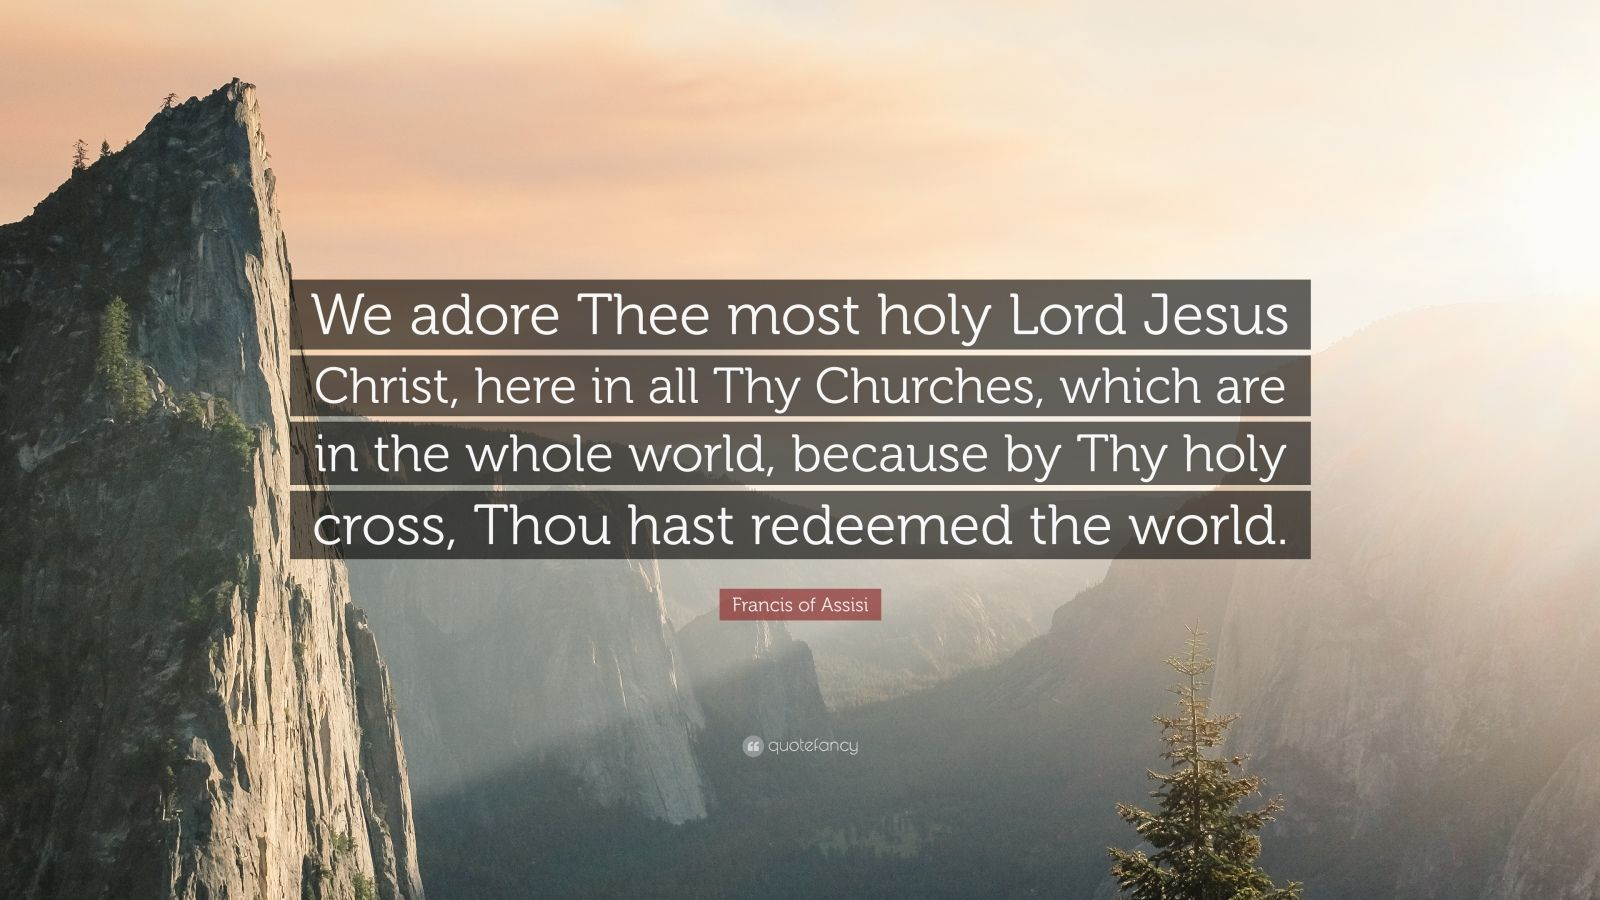 """Francis of Assisi Quote: """"We adore Thee most holy Lord Jesus Christ, here in all Thy Churches, which are in the whole world, because by Thy holy cross, Thou hast redeemed the world."""""""